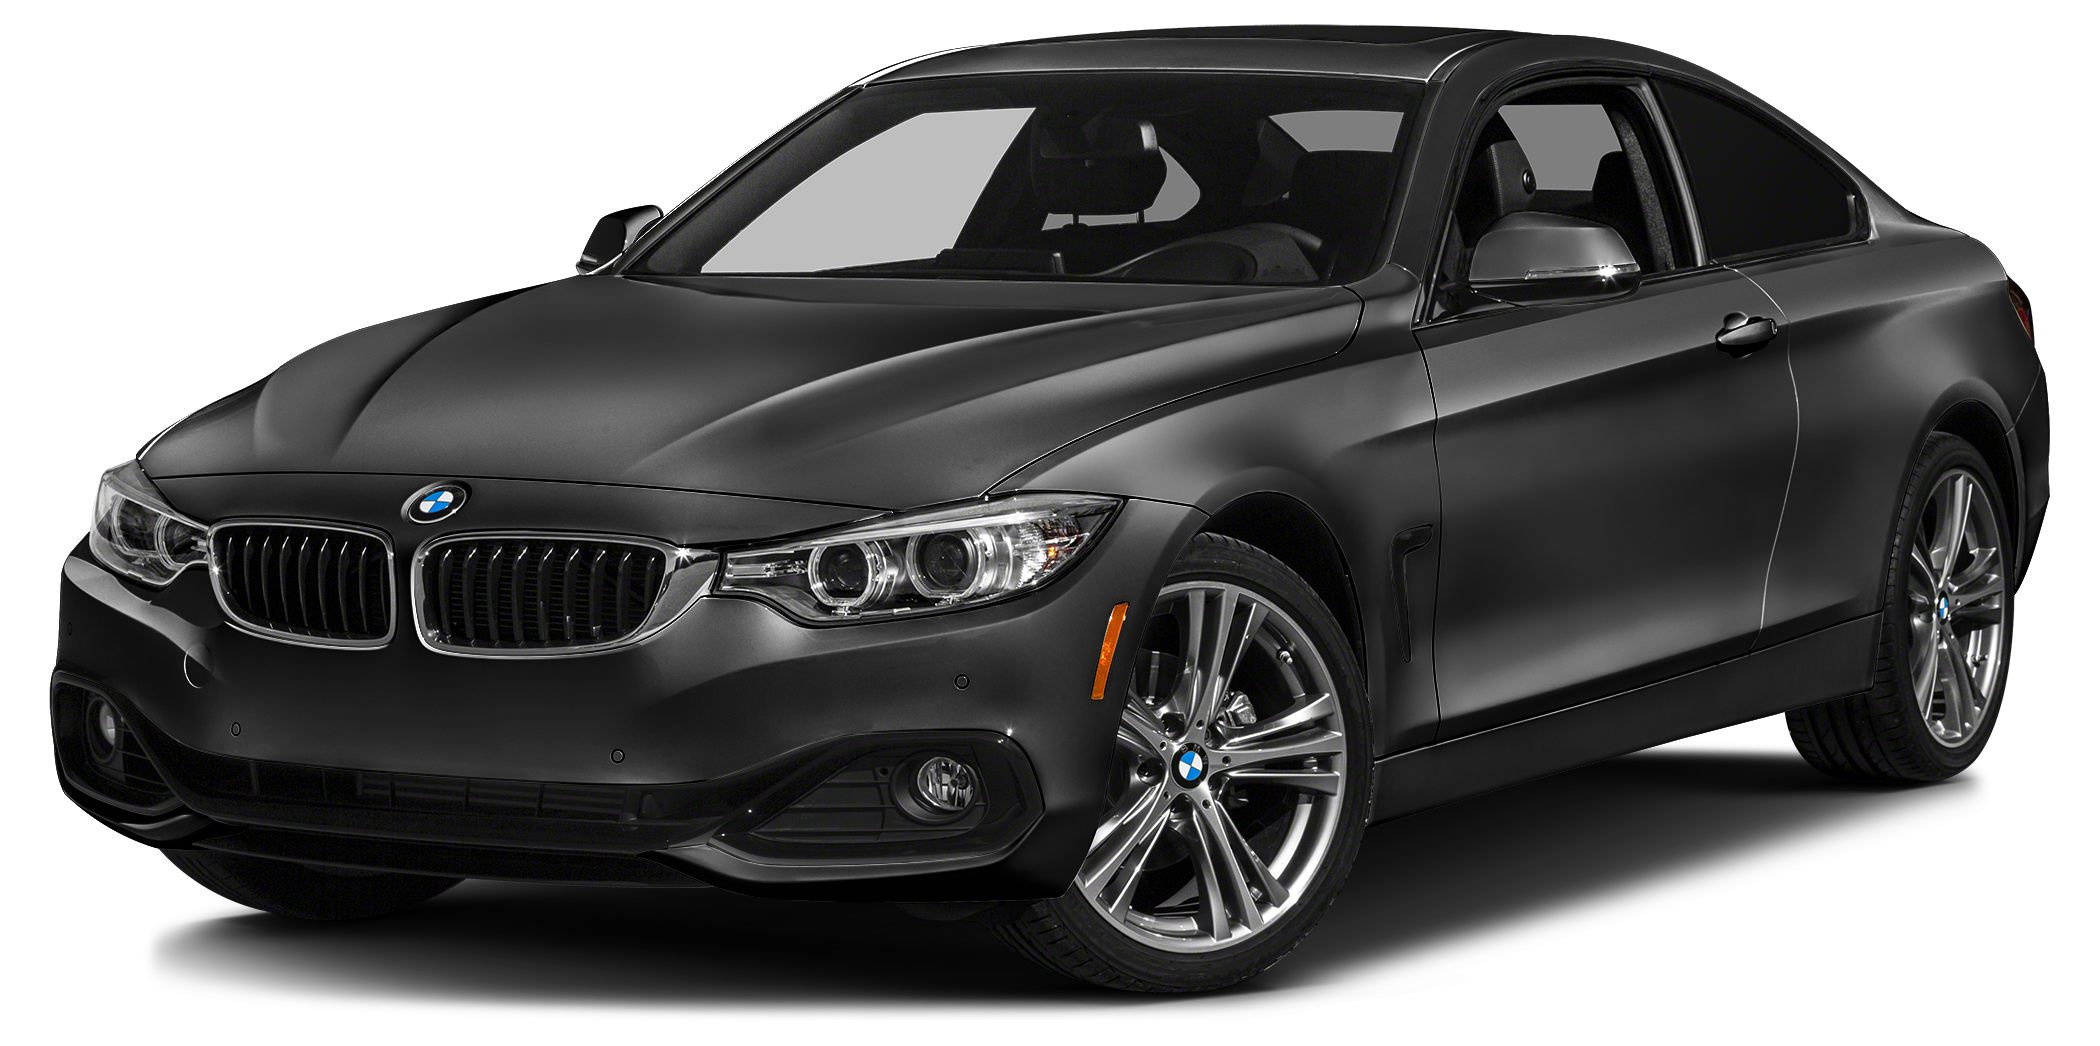 2014 BMW 4 Series 428i REST EASY With its Buyback Qualified CARFAX report you can rest easy with